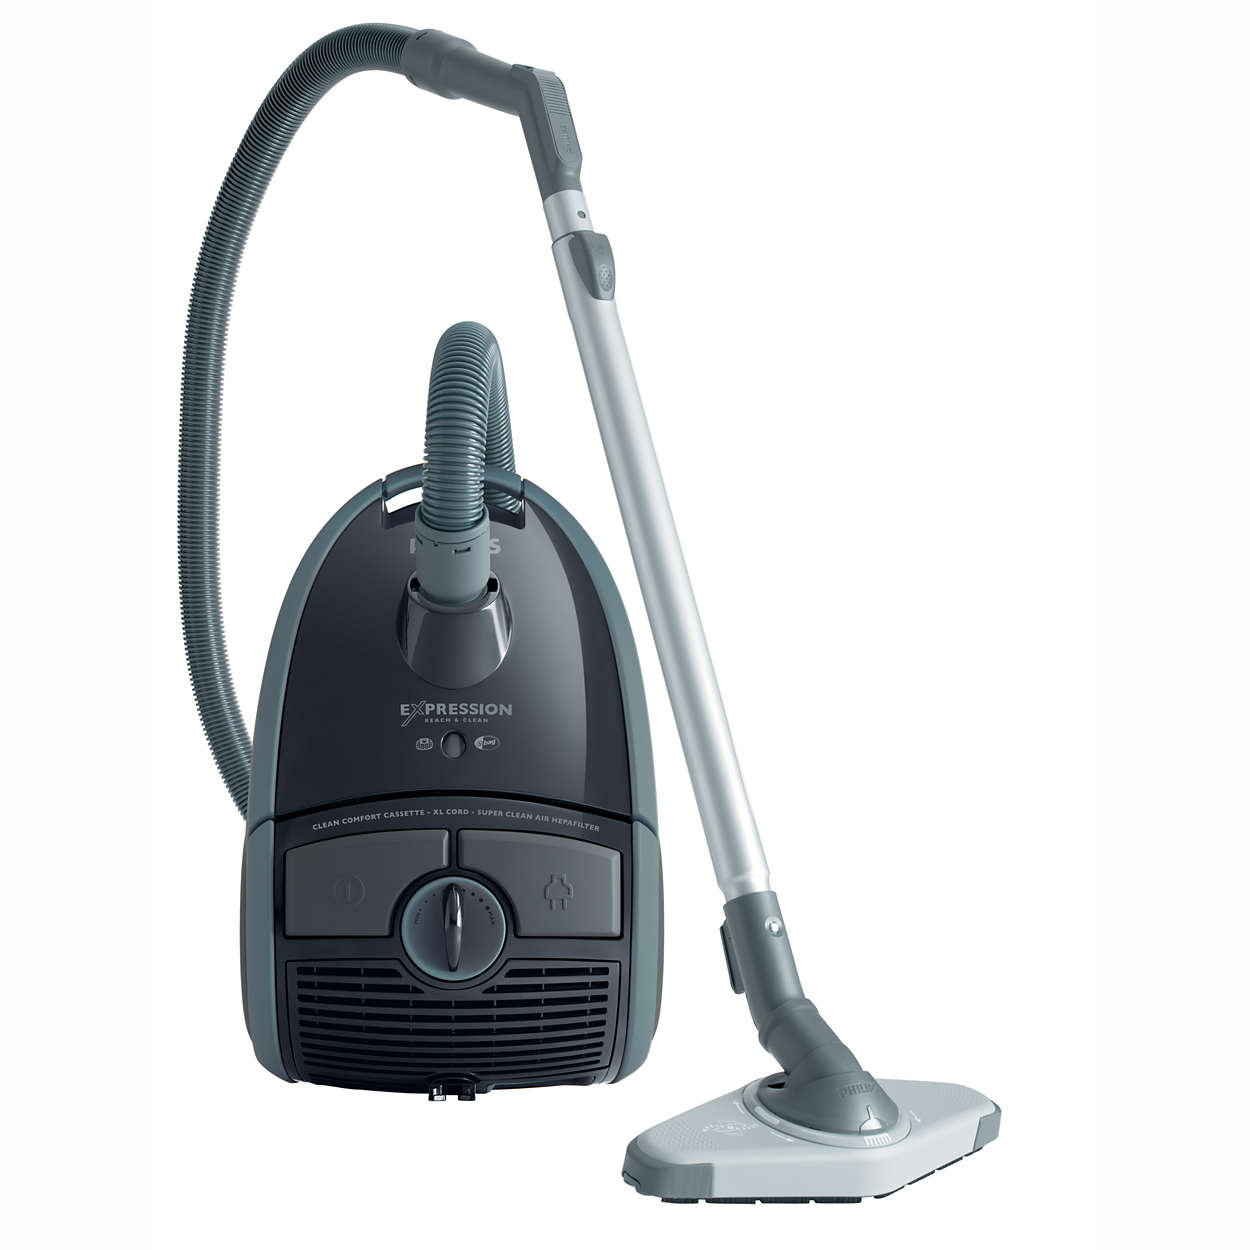 Highest cleaning power for your money